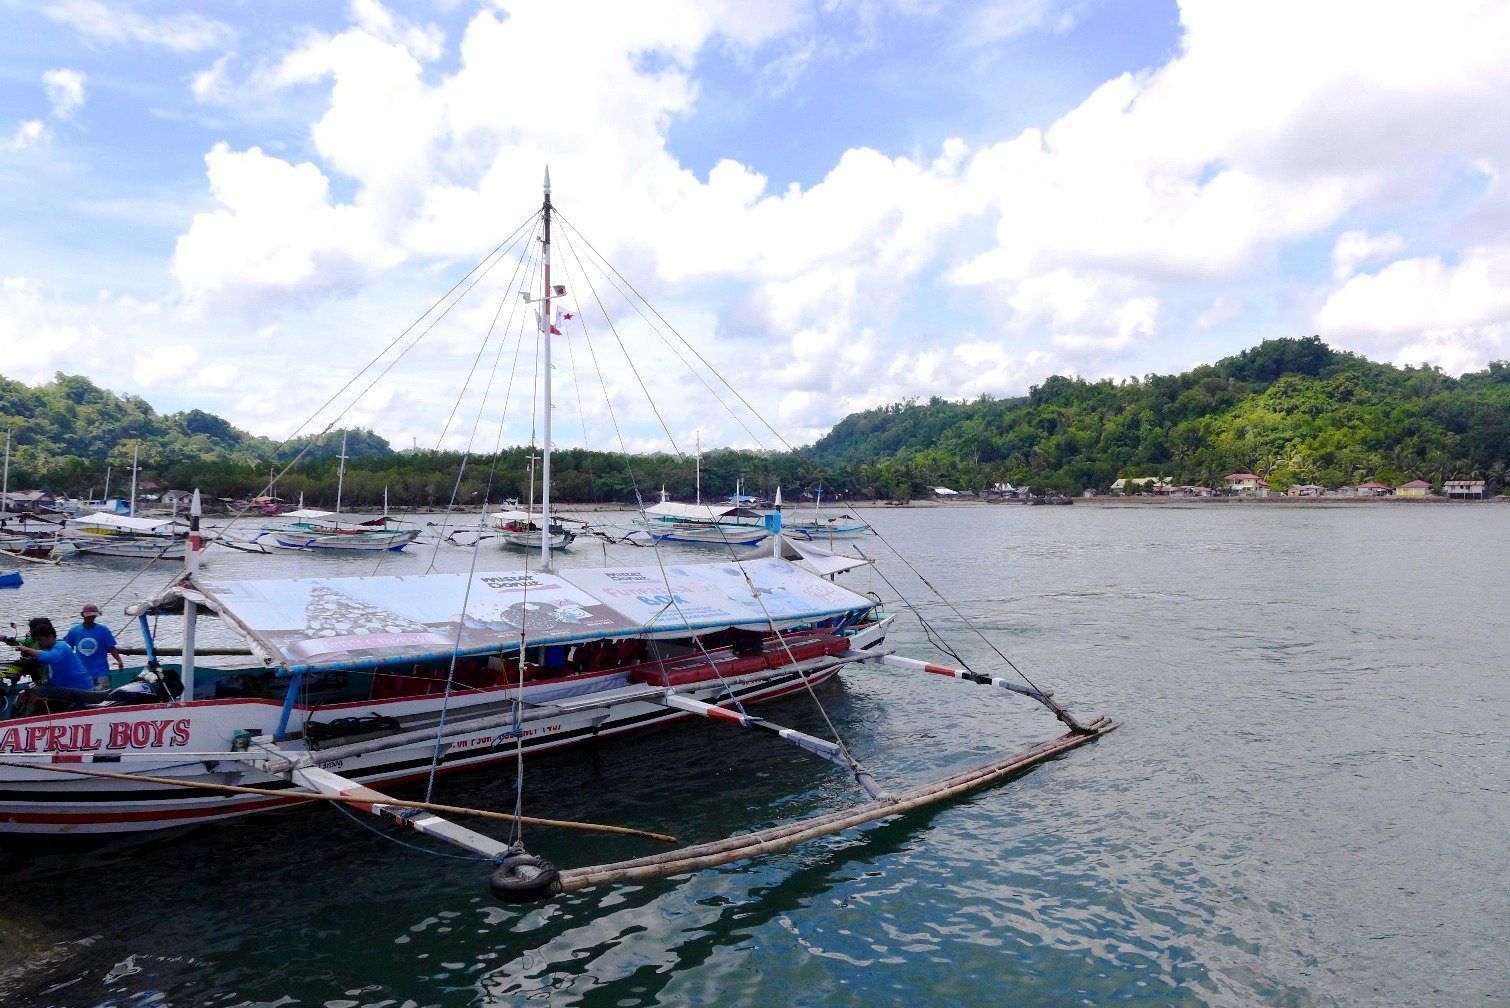 Guimaras itinerary; What to do in Guimaras without beaches; Guimaras mangoes; Guimaras side trip from Iloilo